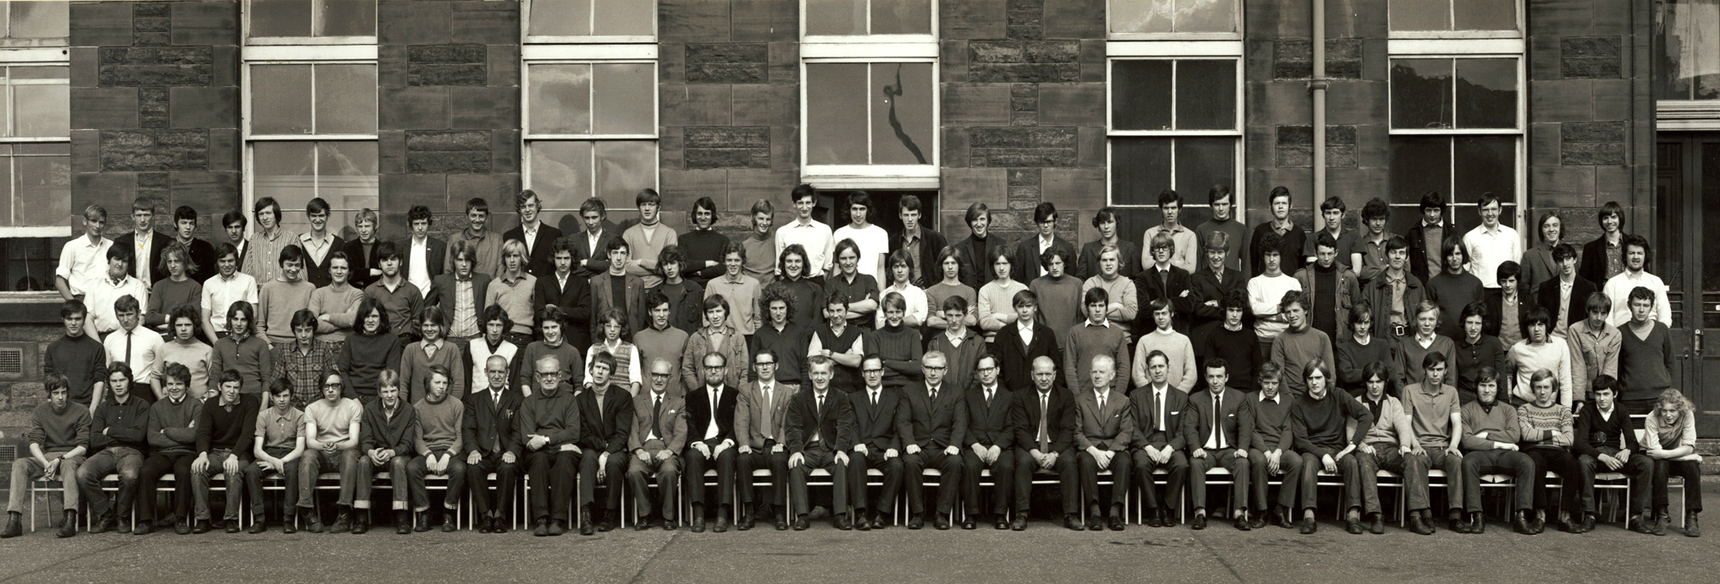 Ferranti Apprentices Couper Street School c.1970